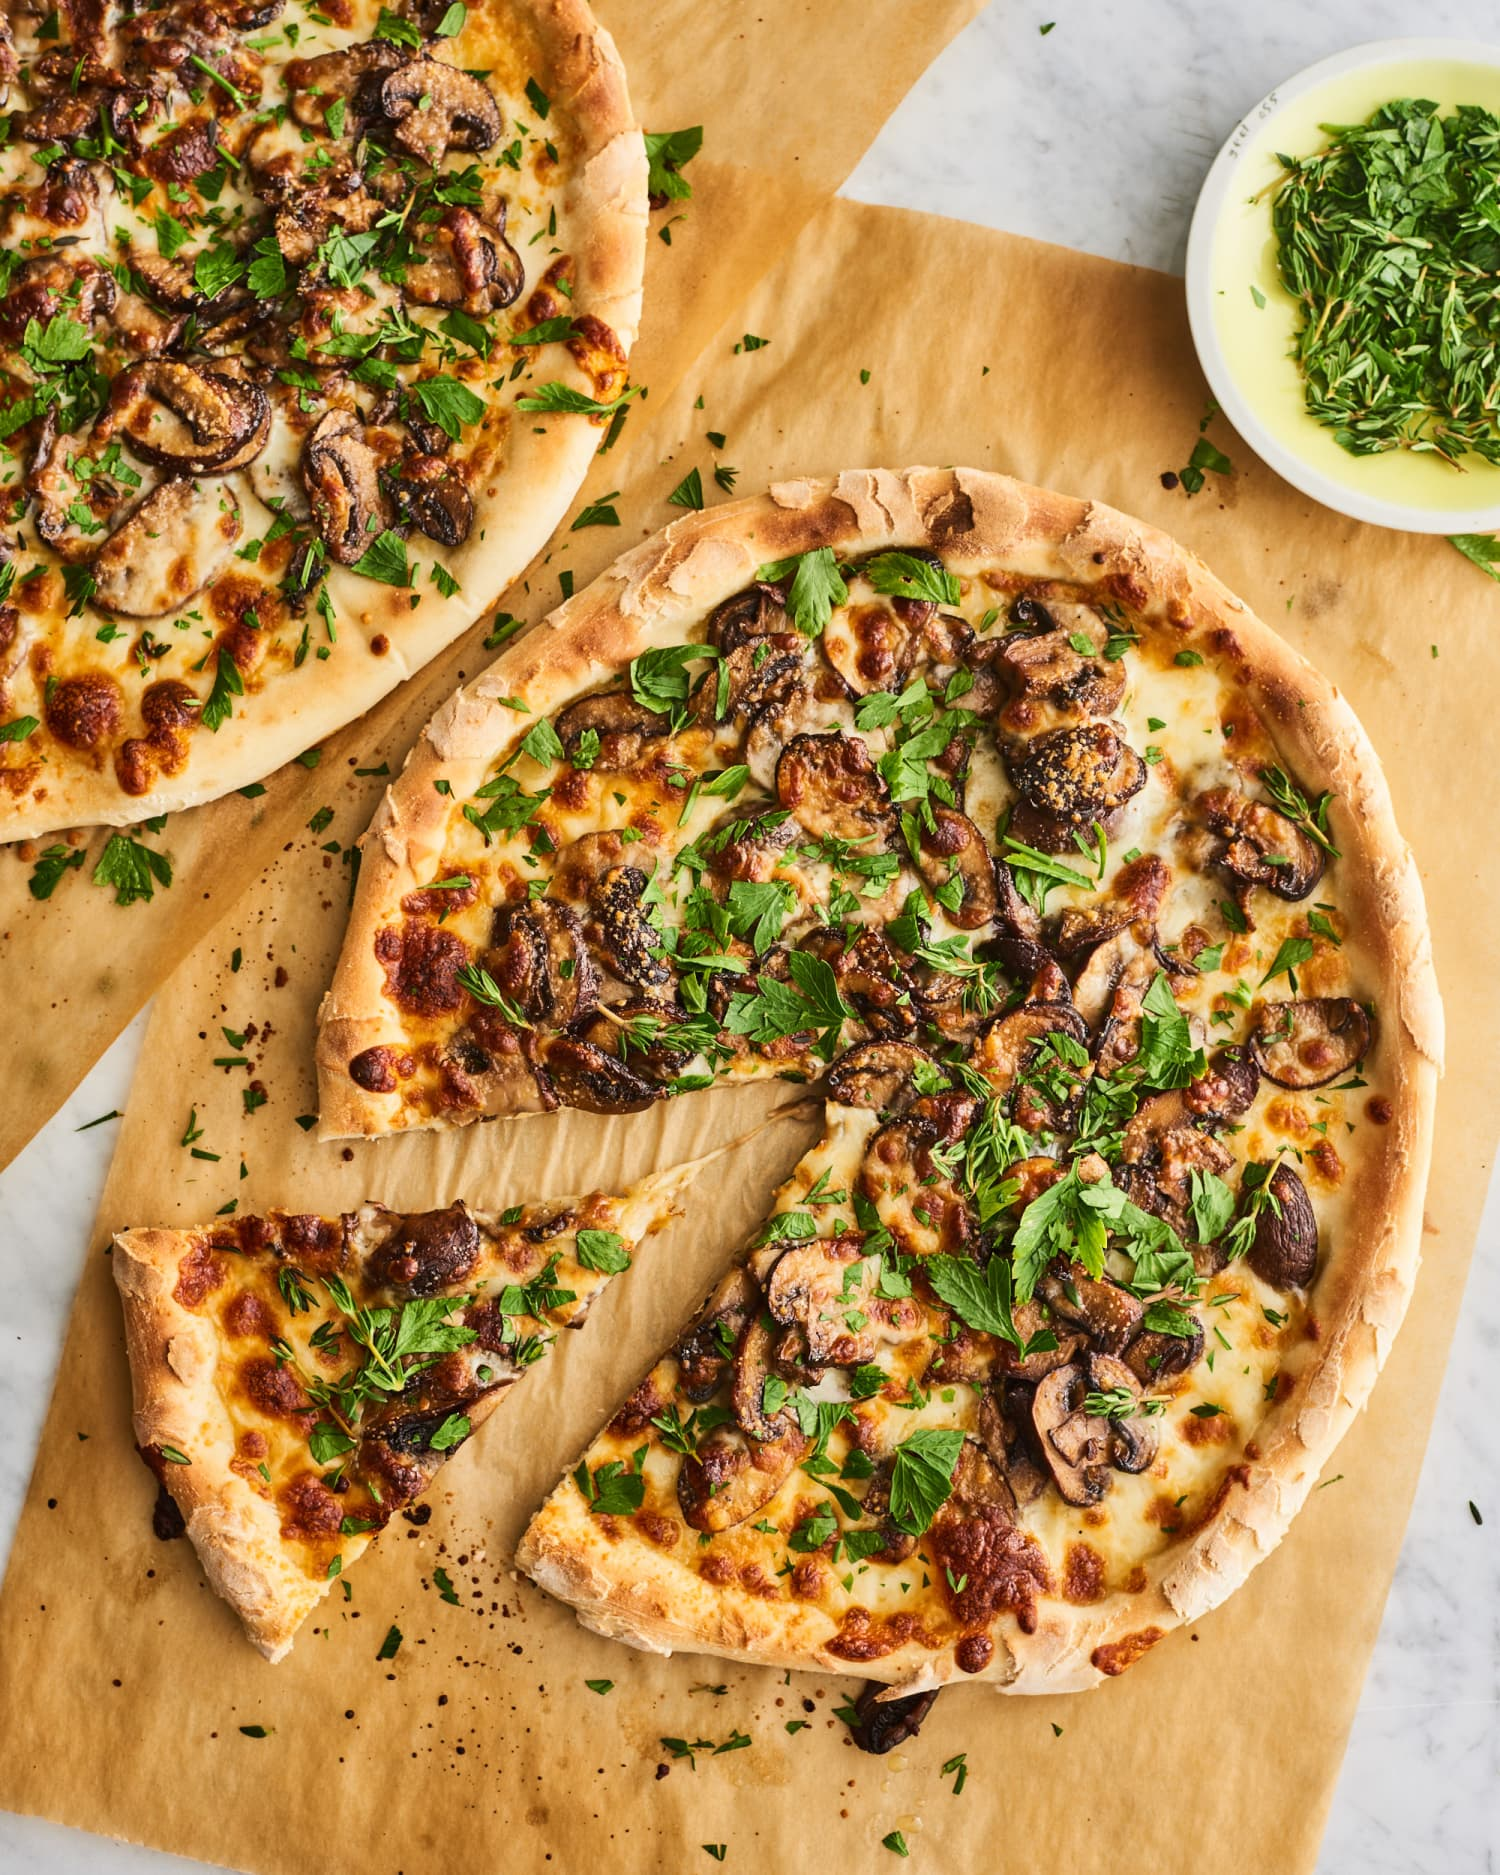 This Garlicky Mushroom Pizza Will Become an Instant Favorite